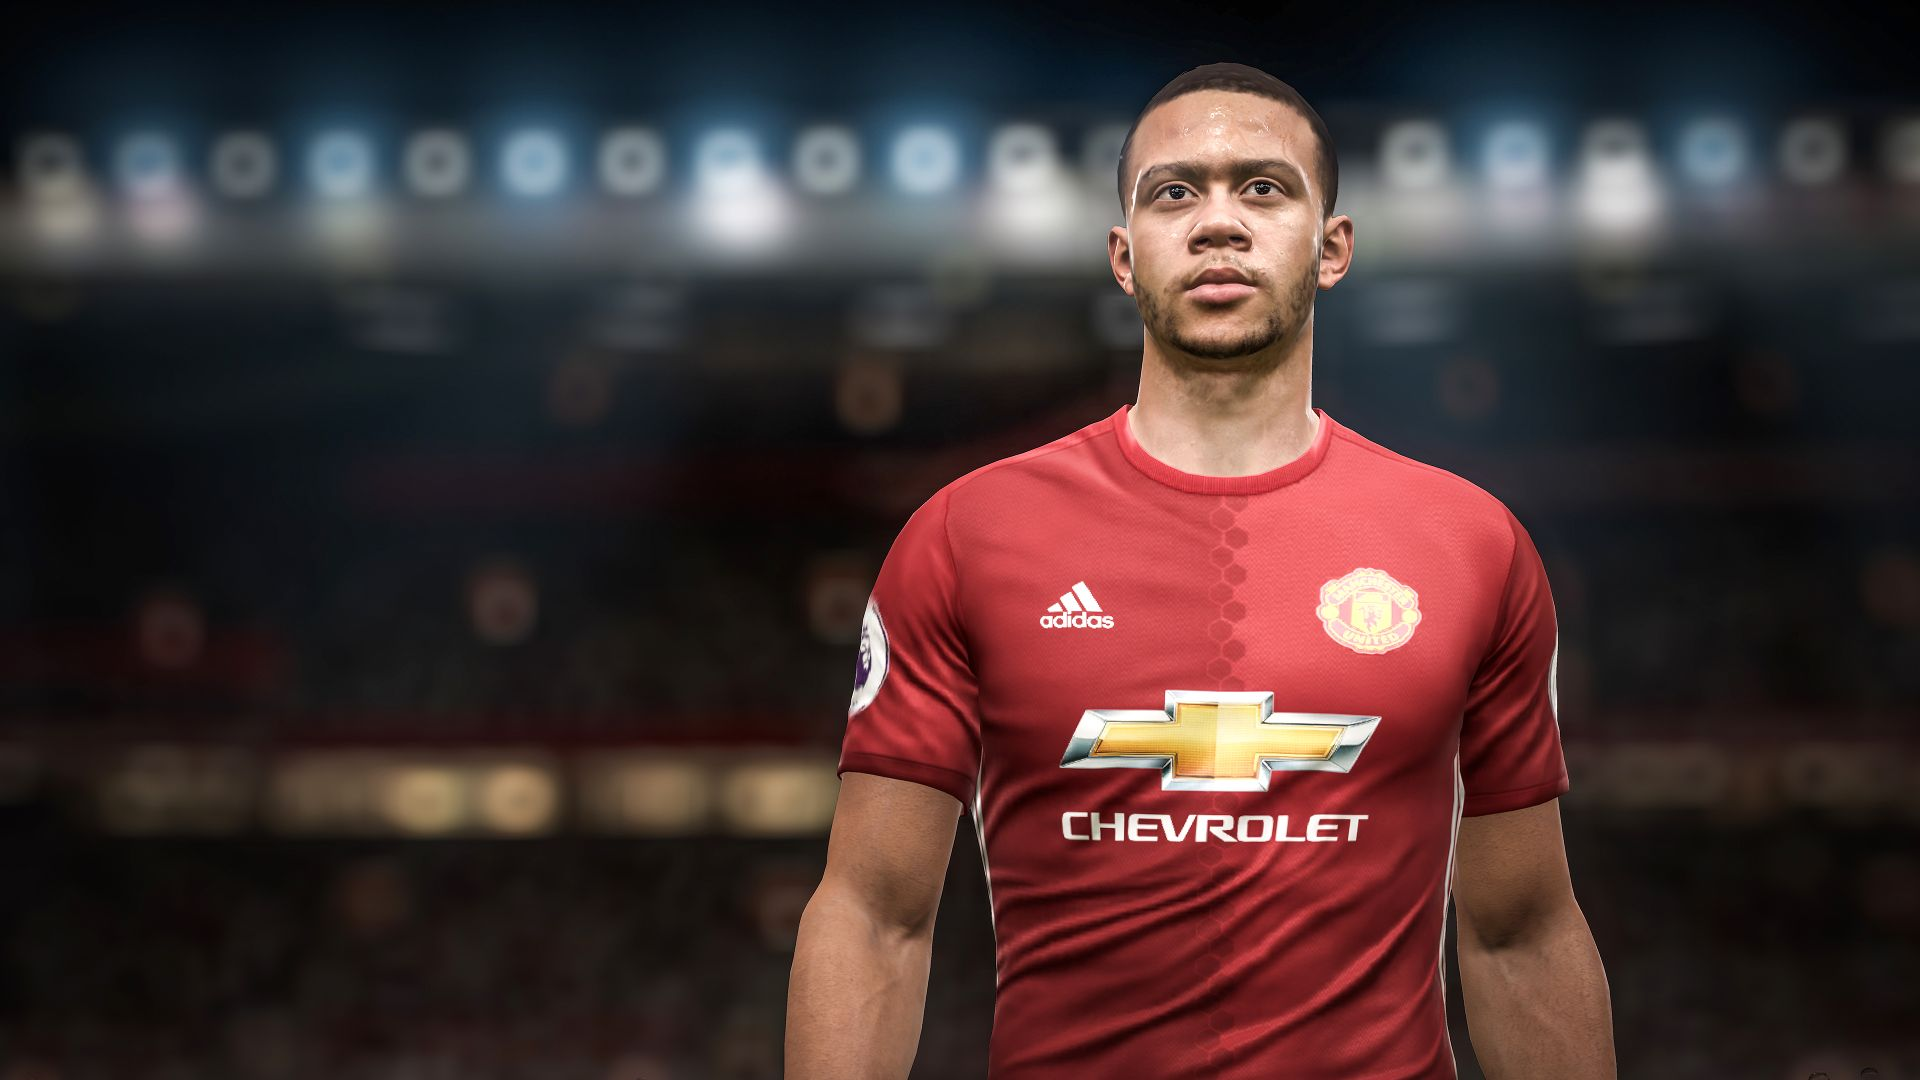 https://data3.origin.com/content/dam/originx/web/app/games/fifa/fifa-17/screenshots/fifa-17/DEPAY_pdp_screenhi_3840x2160_en_ww.jpg